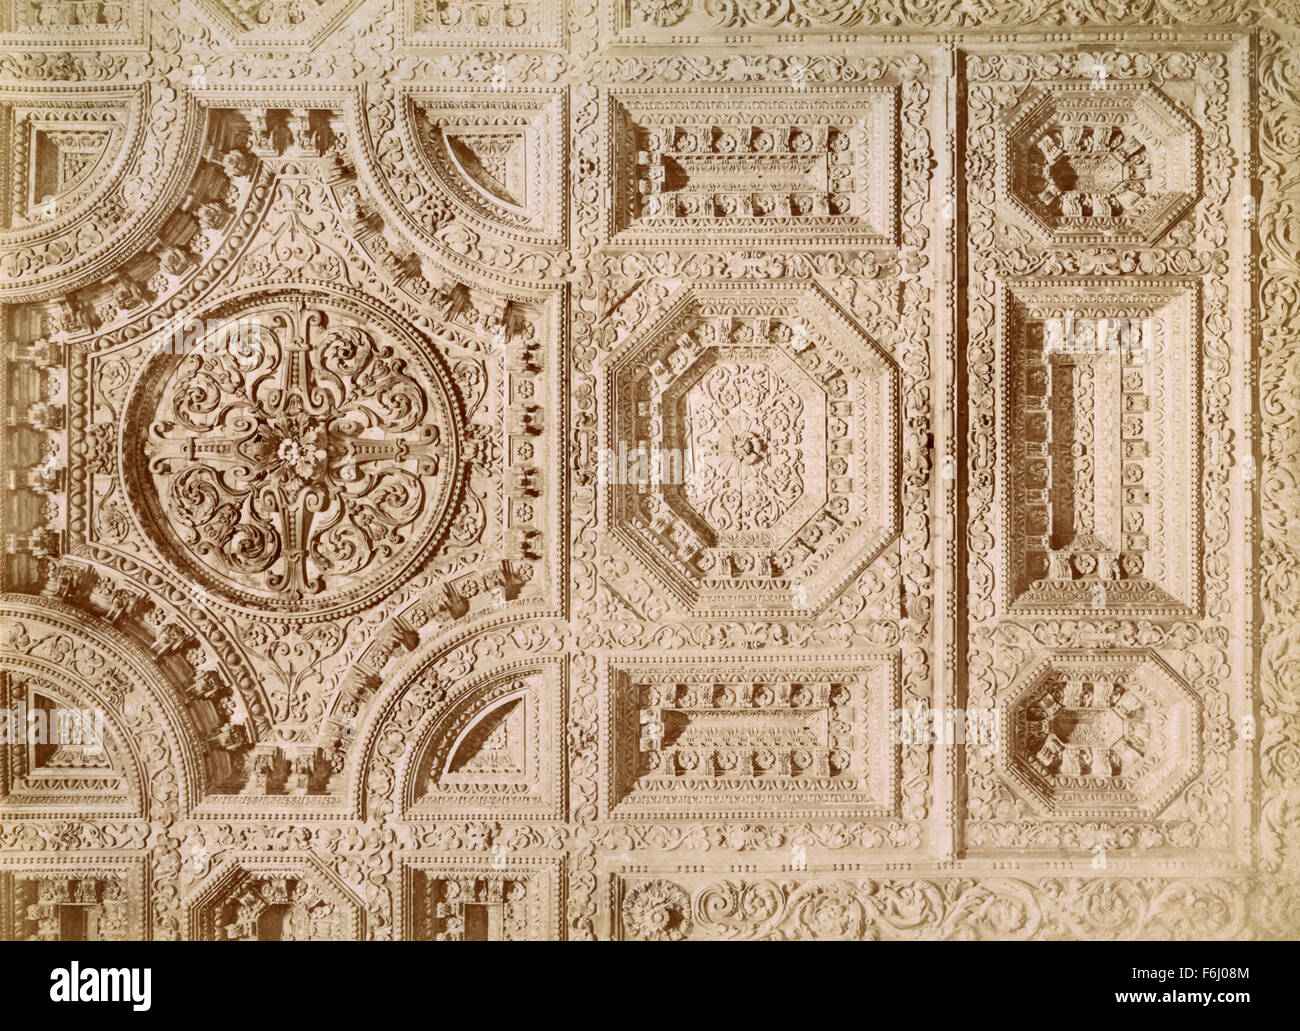 Carved wooden ceiling, Church of Badia, Florence, Italy - Stock Image